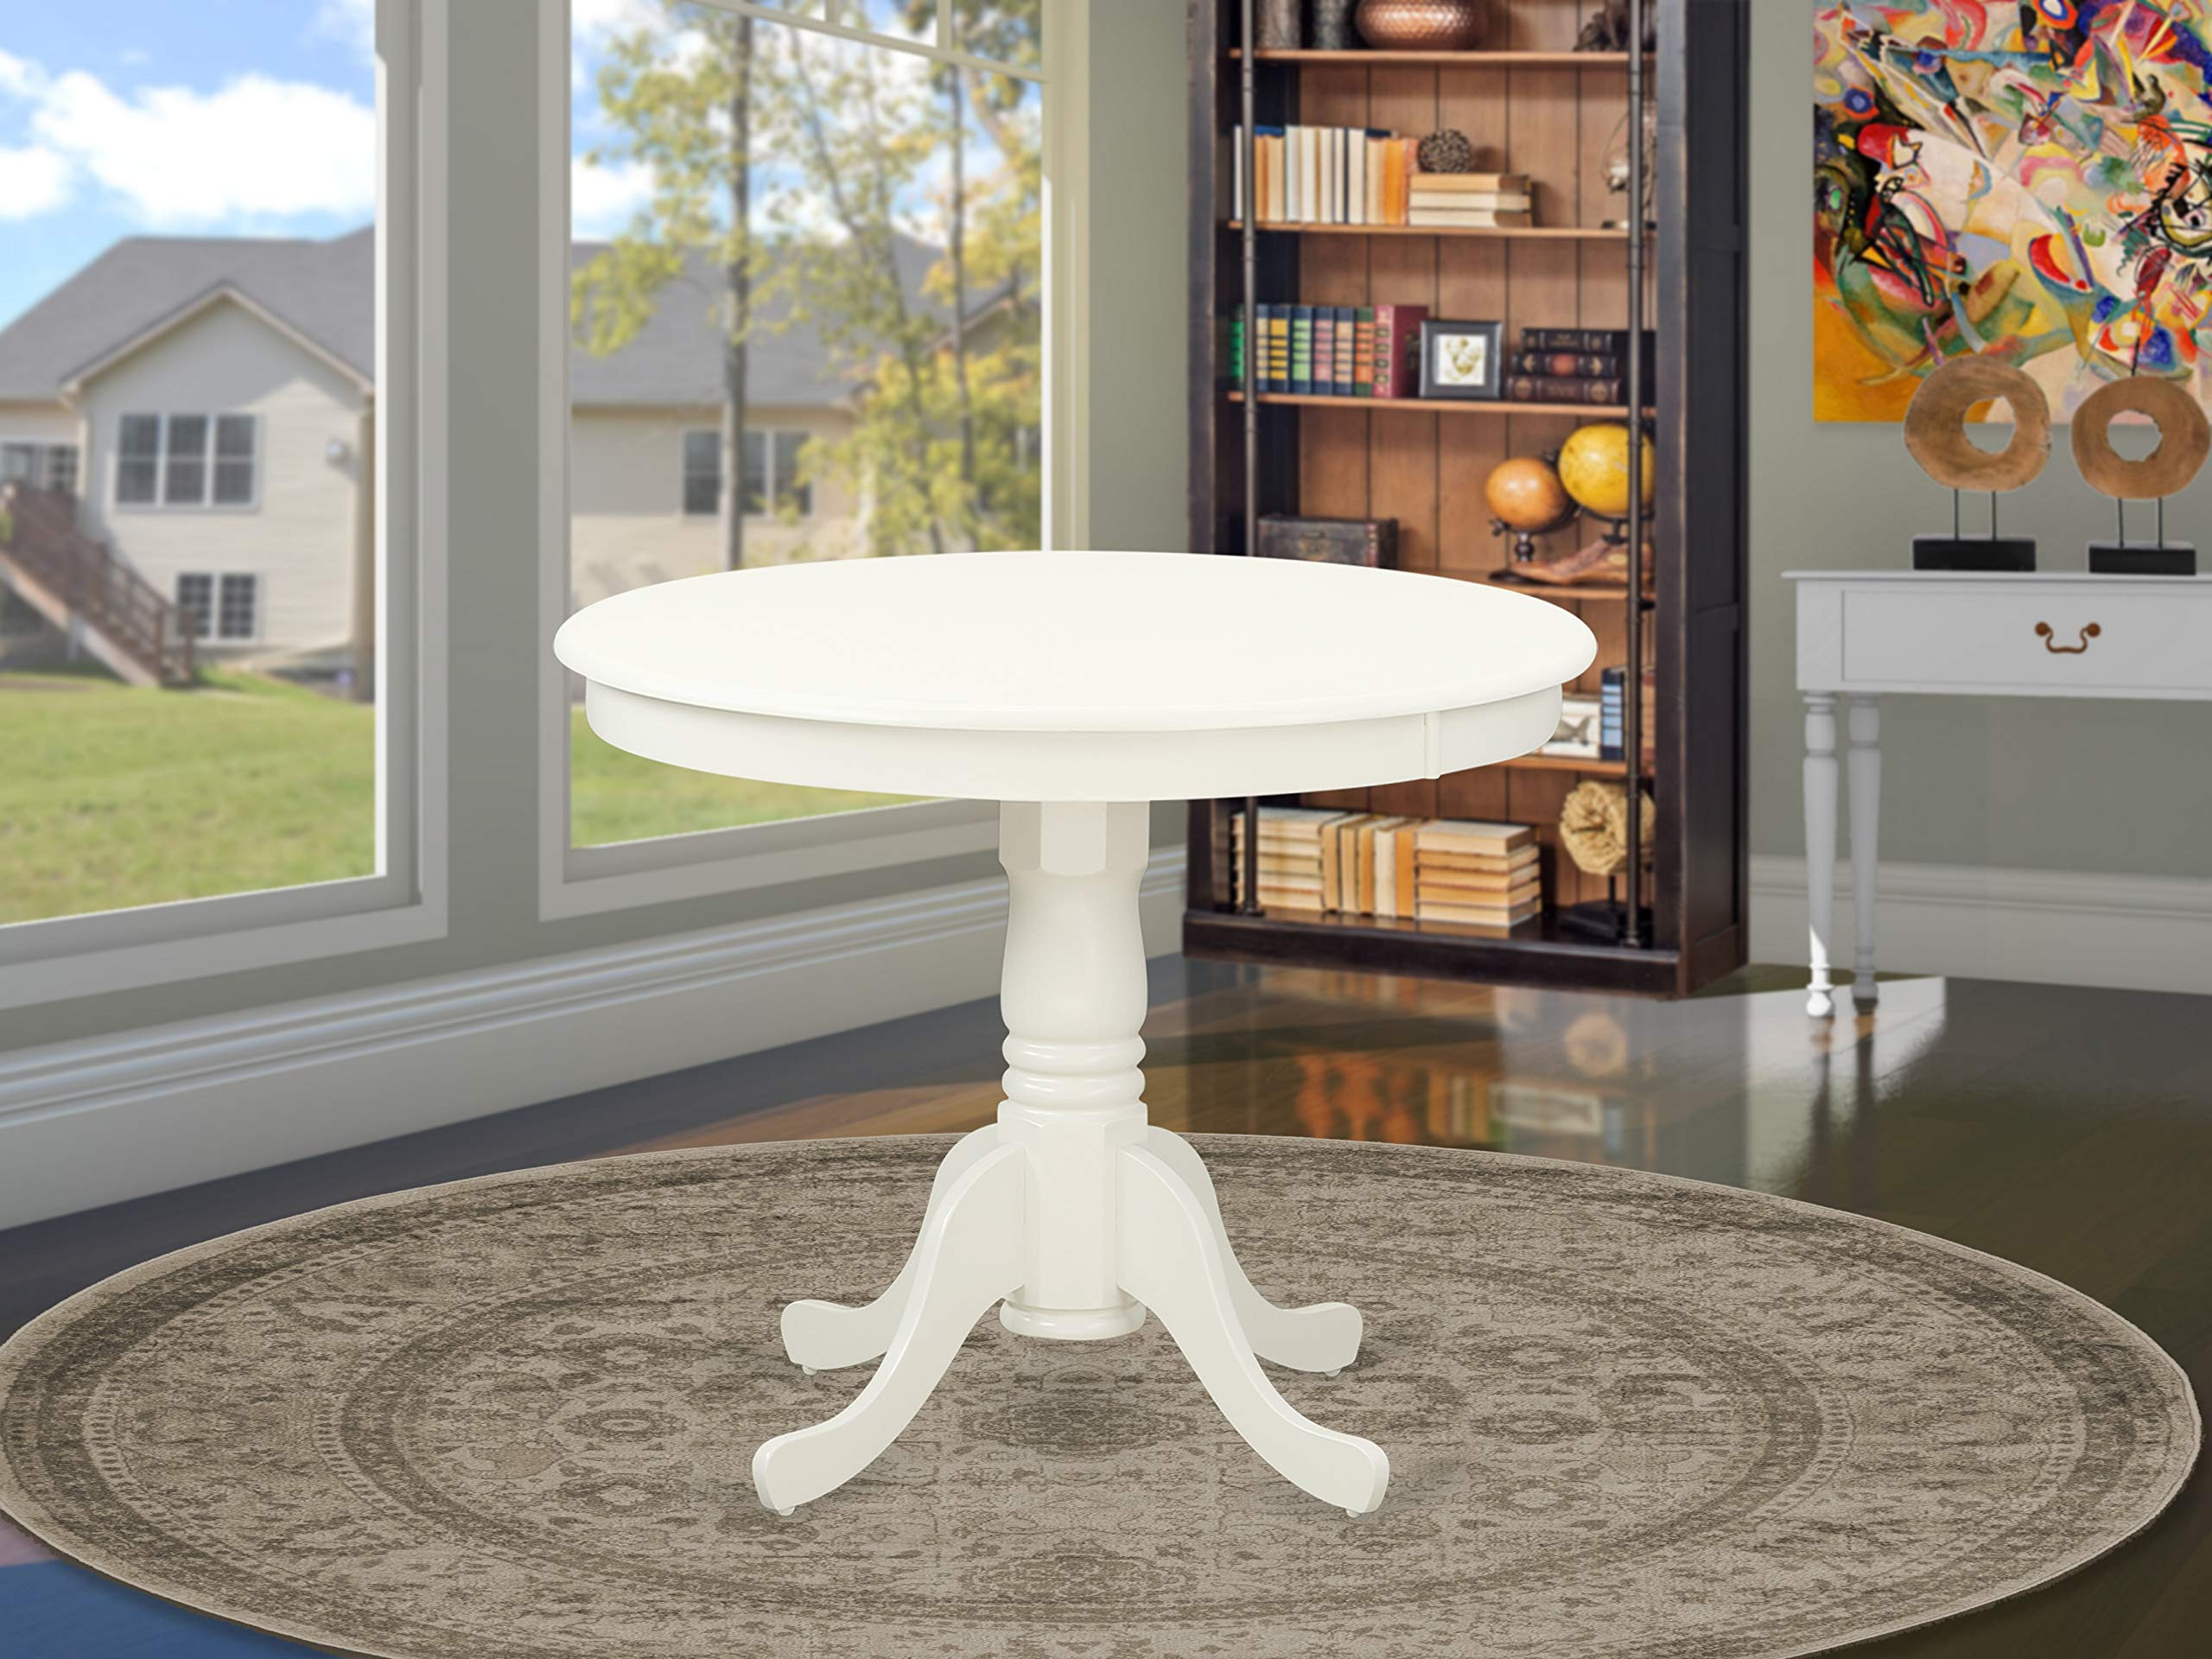 East West Furniture ANT-LWH-TP Antique Table 36'' Round with Finish, Linen White by East West Furniture